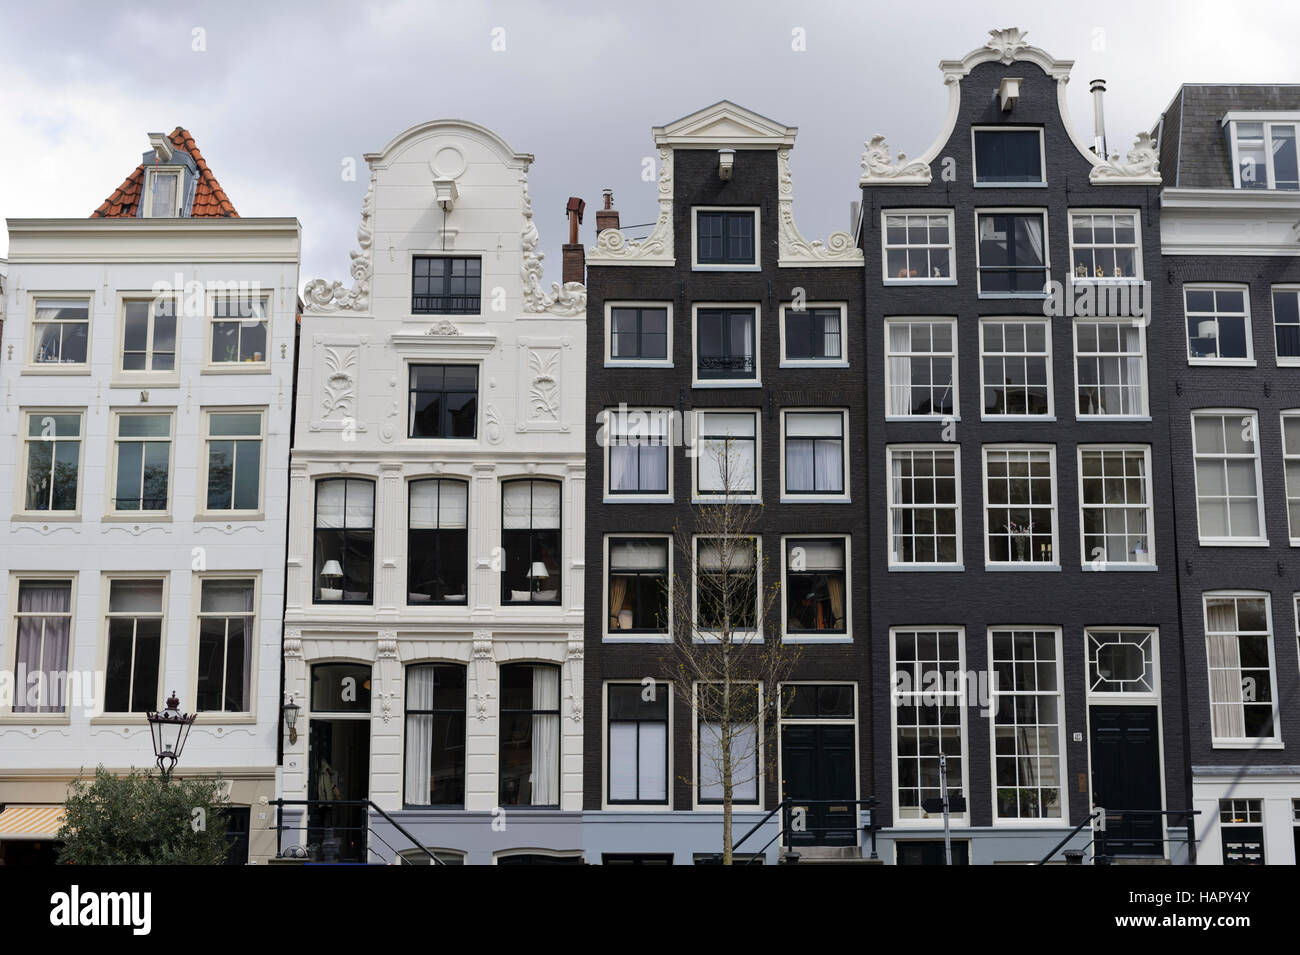 A row of traditional buildings in Amsterdam, Holland, Netherlands. - Stock Image